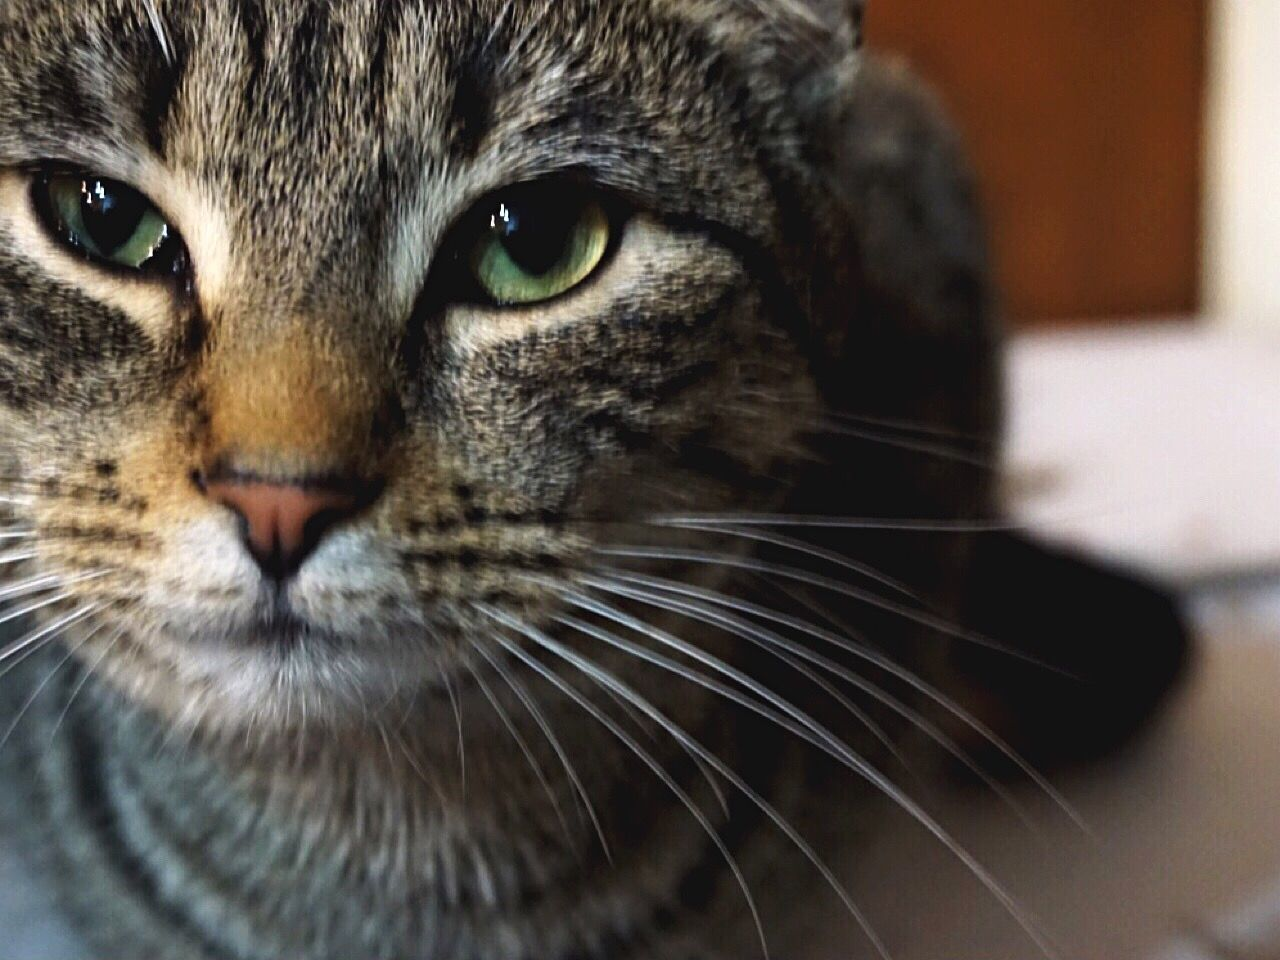 Cats hate me Domestic Cat Animal Themes Feline Pets Whisker Cat Cats Close-up Portrait Domestic Animals Mammal Looking At Camera Indoors  No People Pet Animals Green Green Color Green Eyes Beautiful Life Beauty Lifestyles